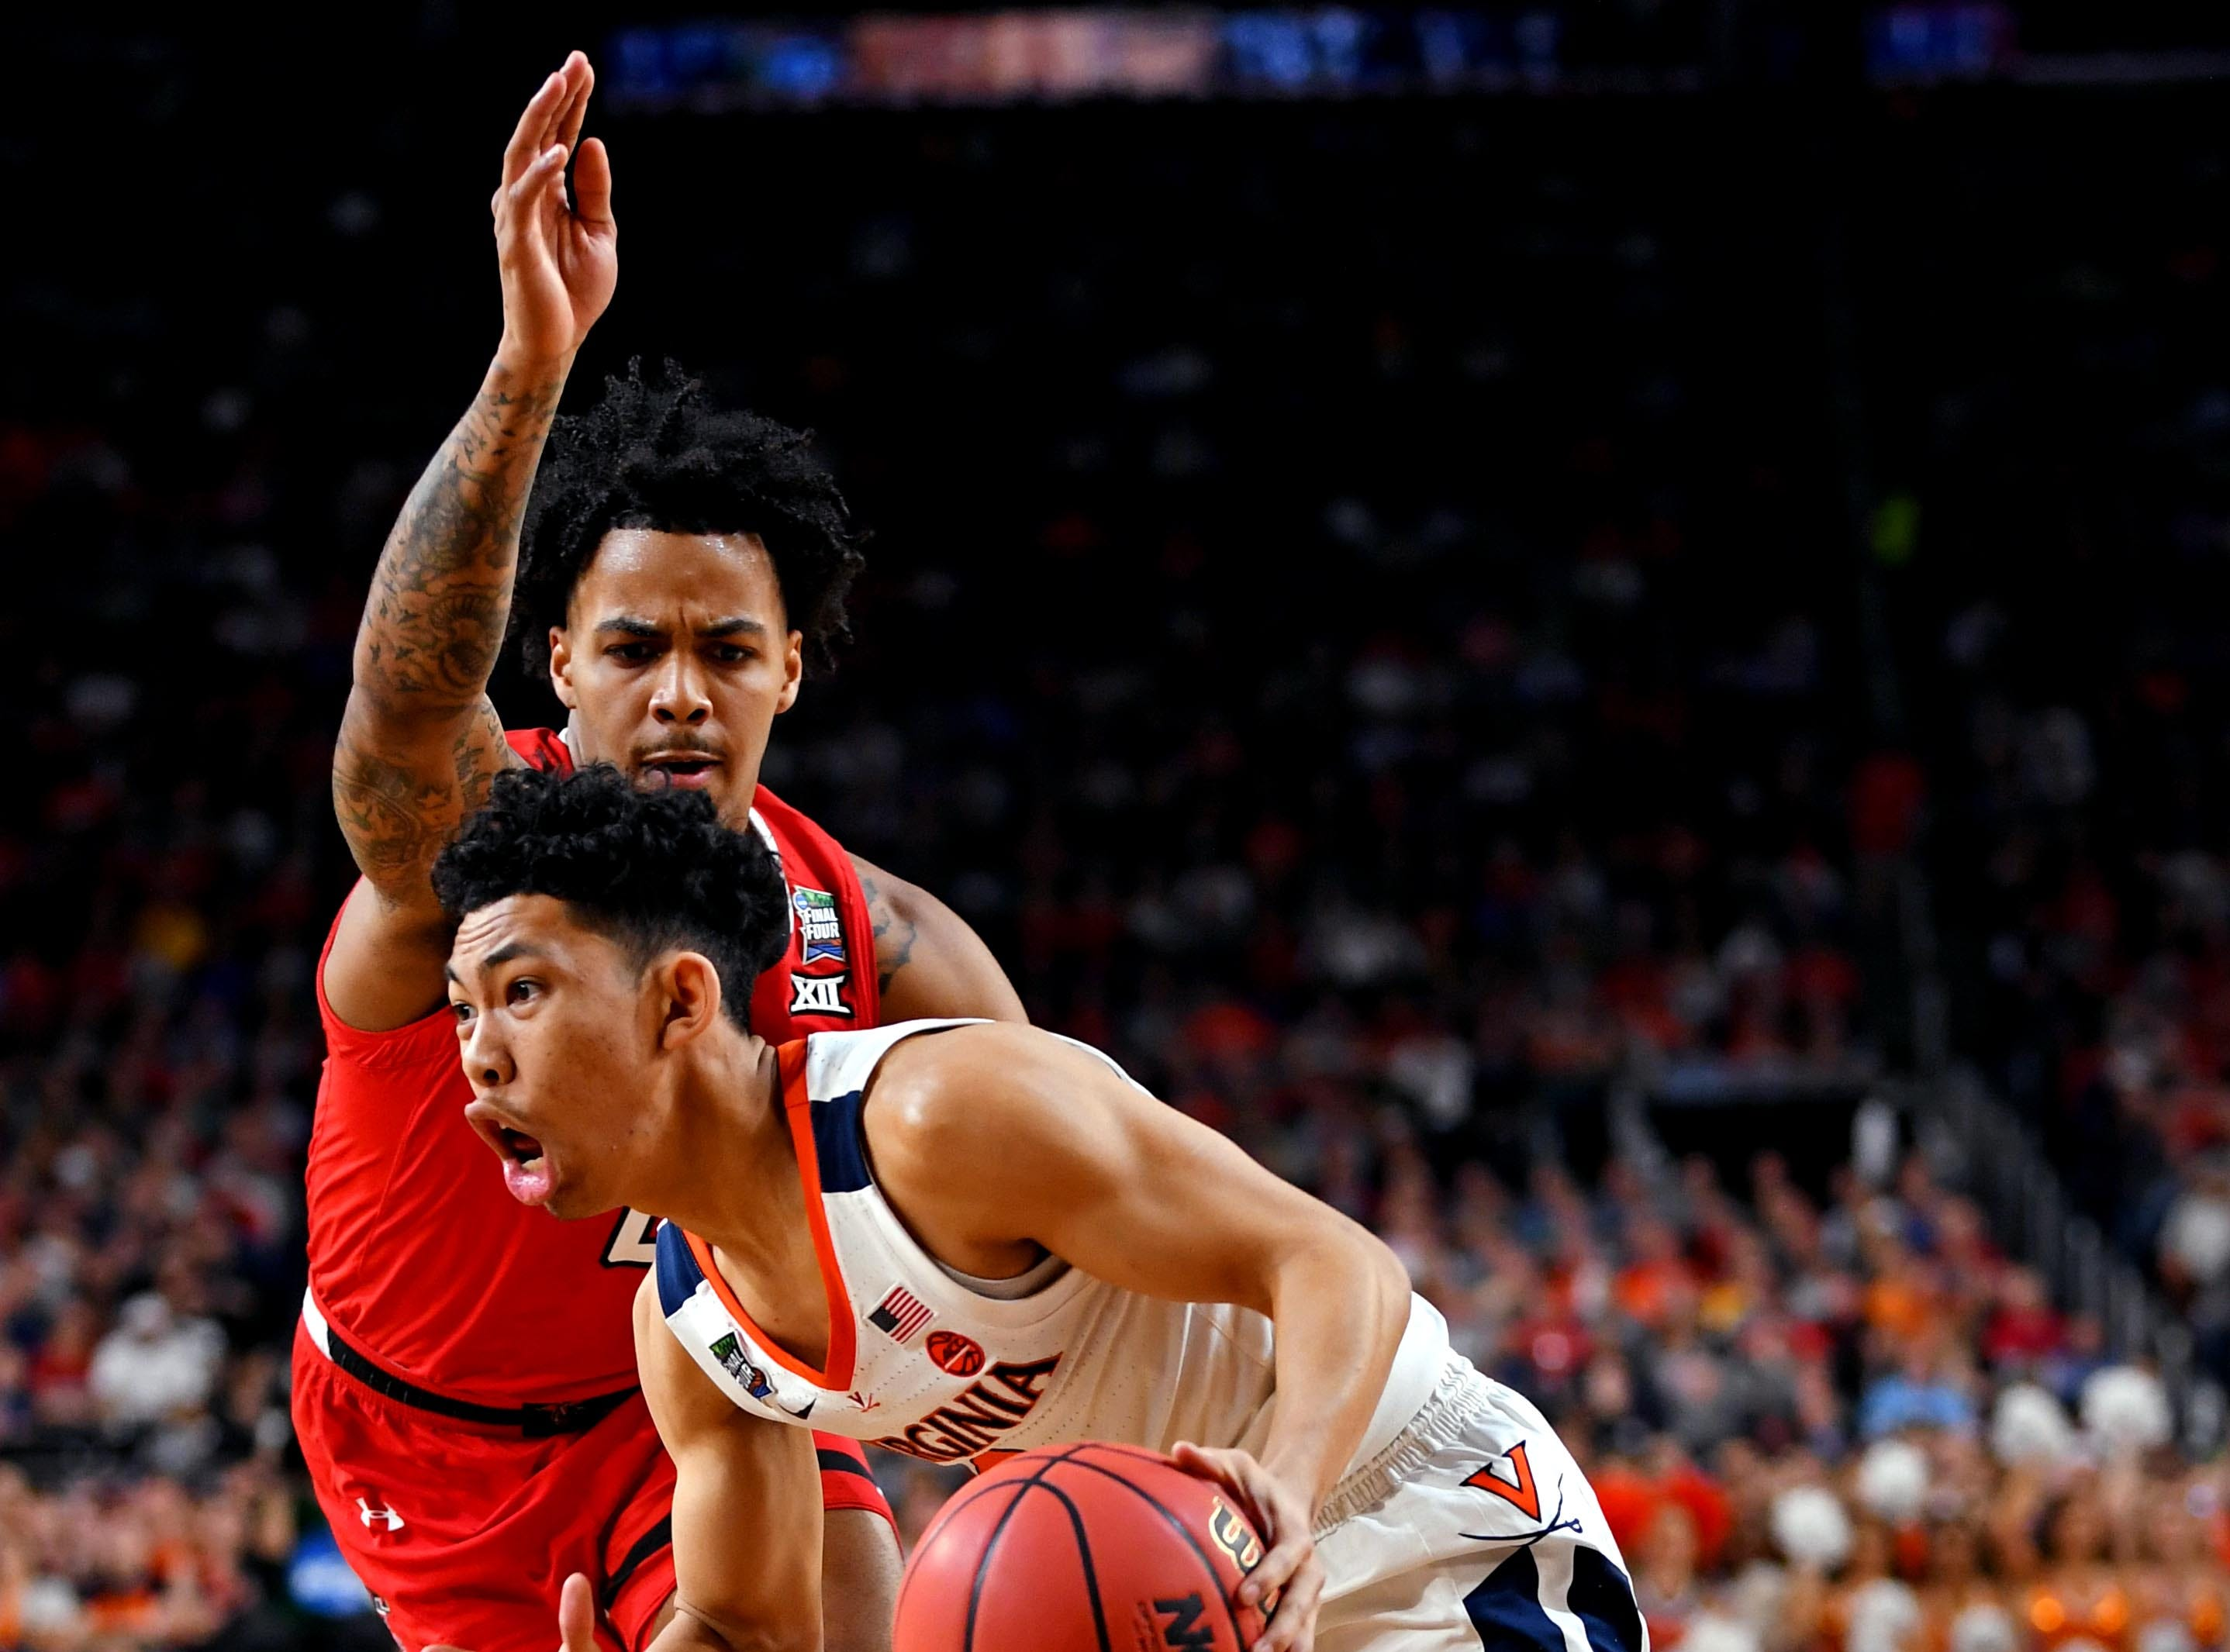 Apr 8, 2019; Minneapolis, MN, USA; Virginia Cavaliers guard Kihei Clark (0) drives to the basket against Texas Tech Red Raiders guard Kyler Edwards (0) during the first half in the championship game of the 2019 men's Final Four at US Bank Stadium. Mandatory Credit: Bob Donnan-USA TODAY Sports